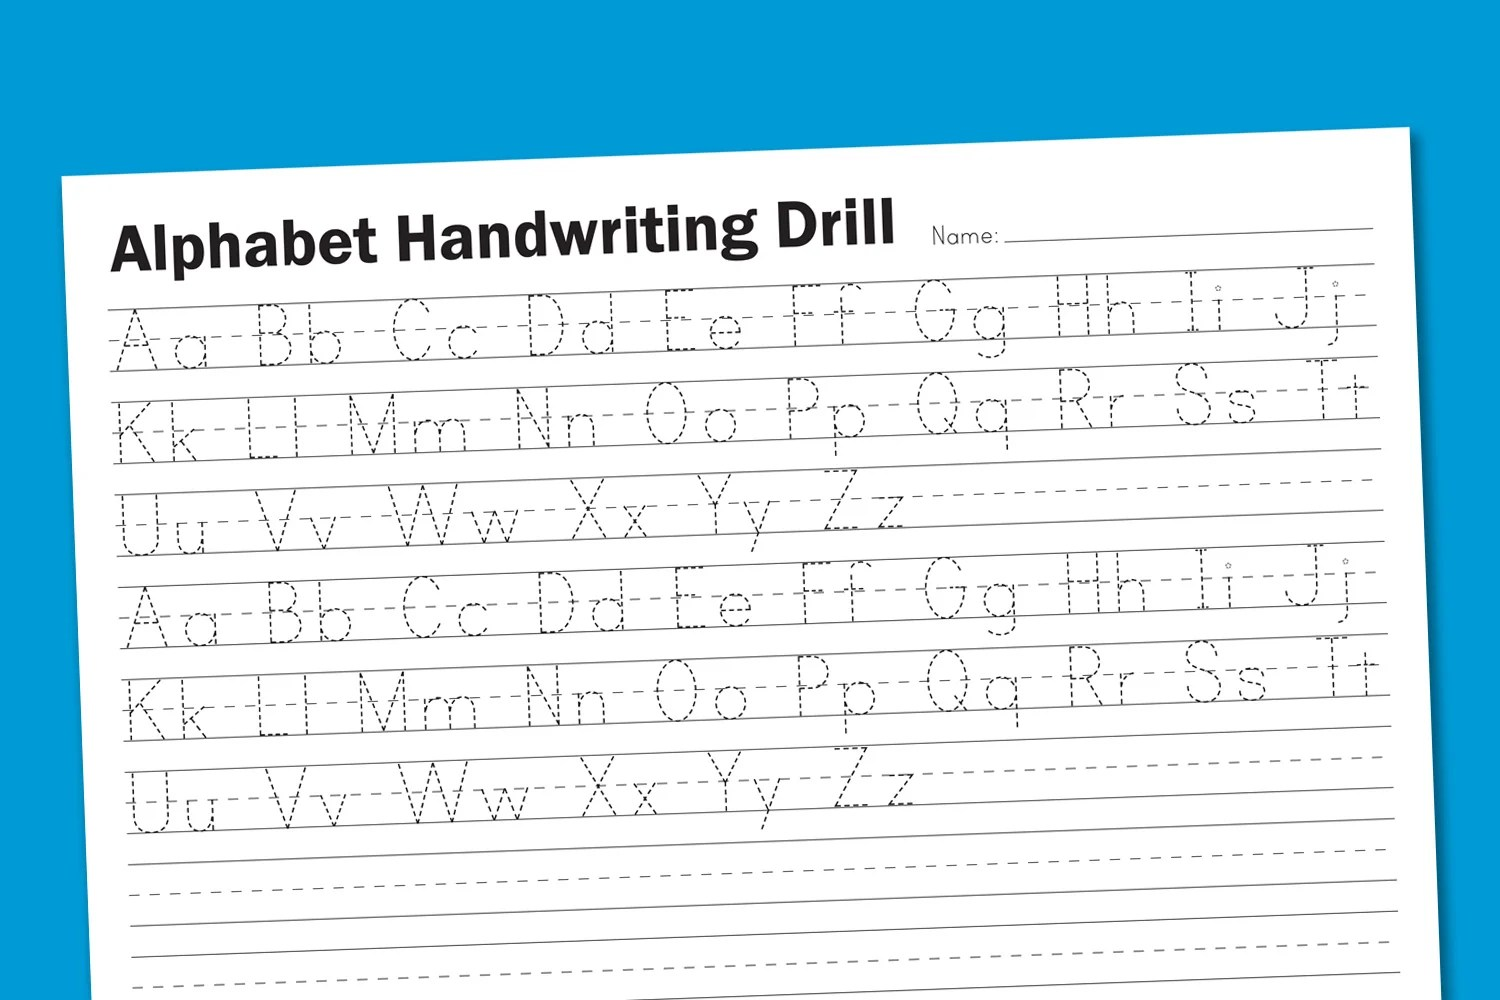 Alphabet Handwriting Drill